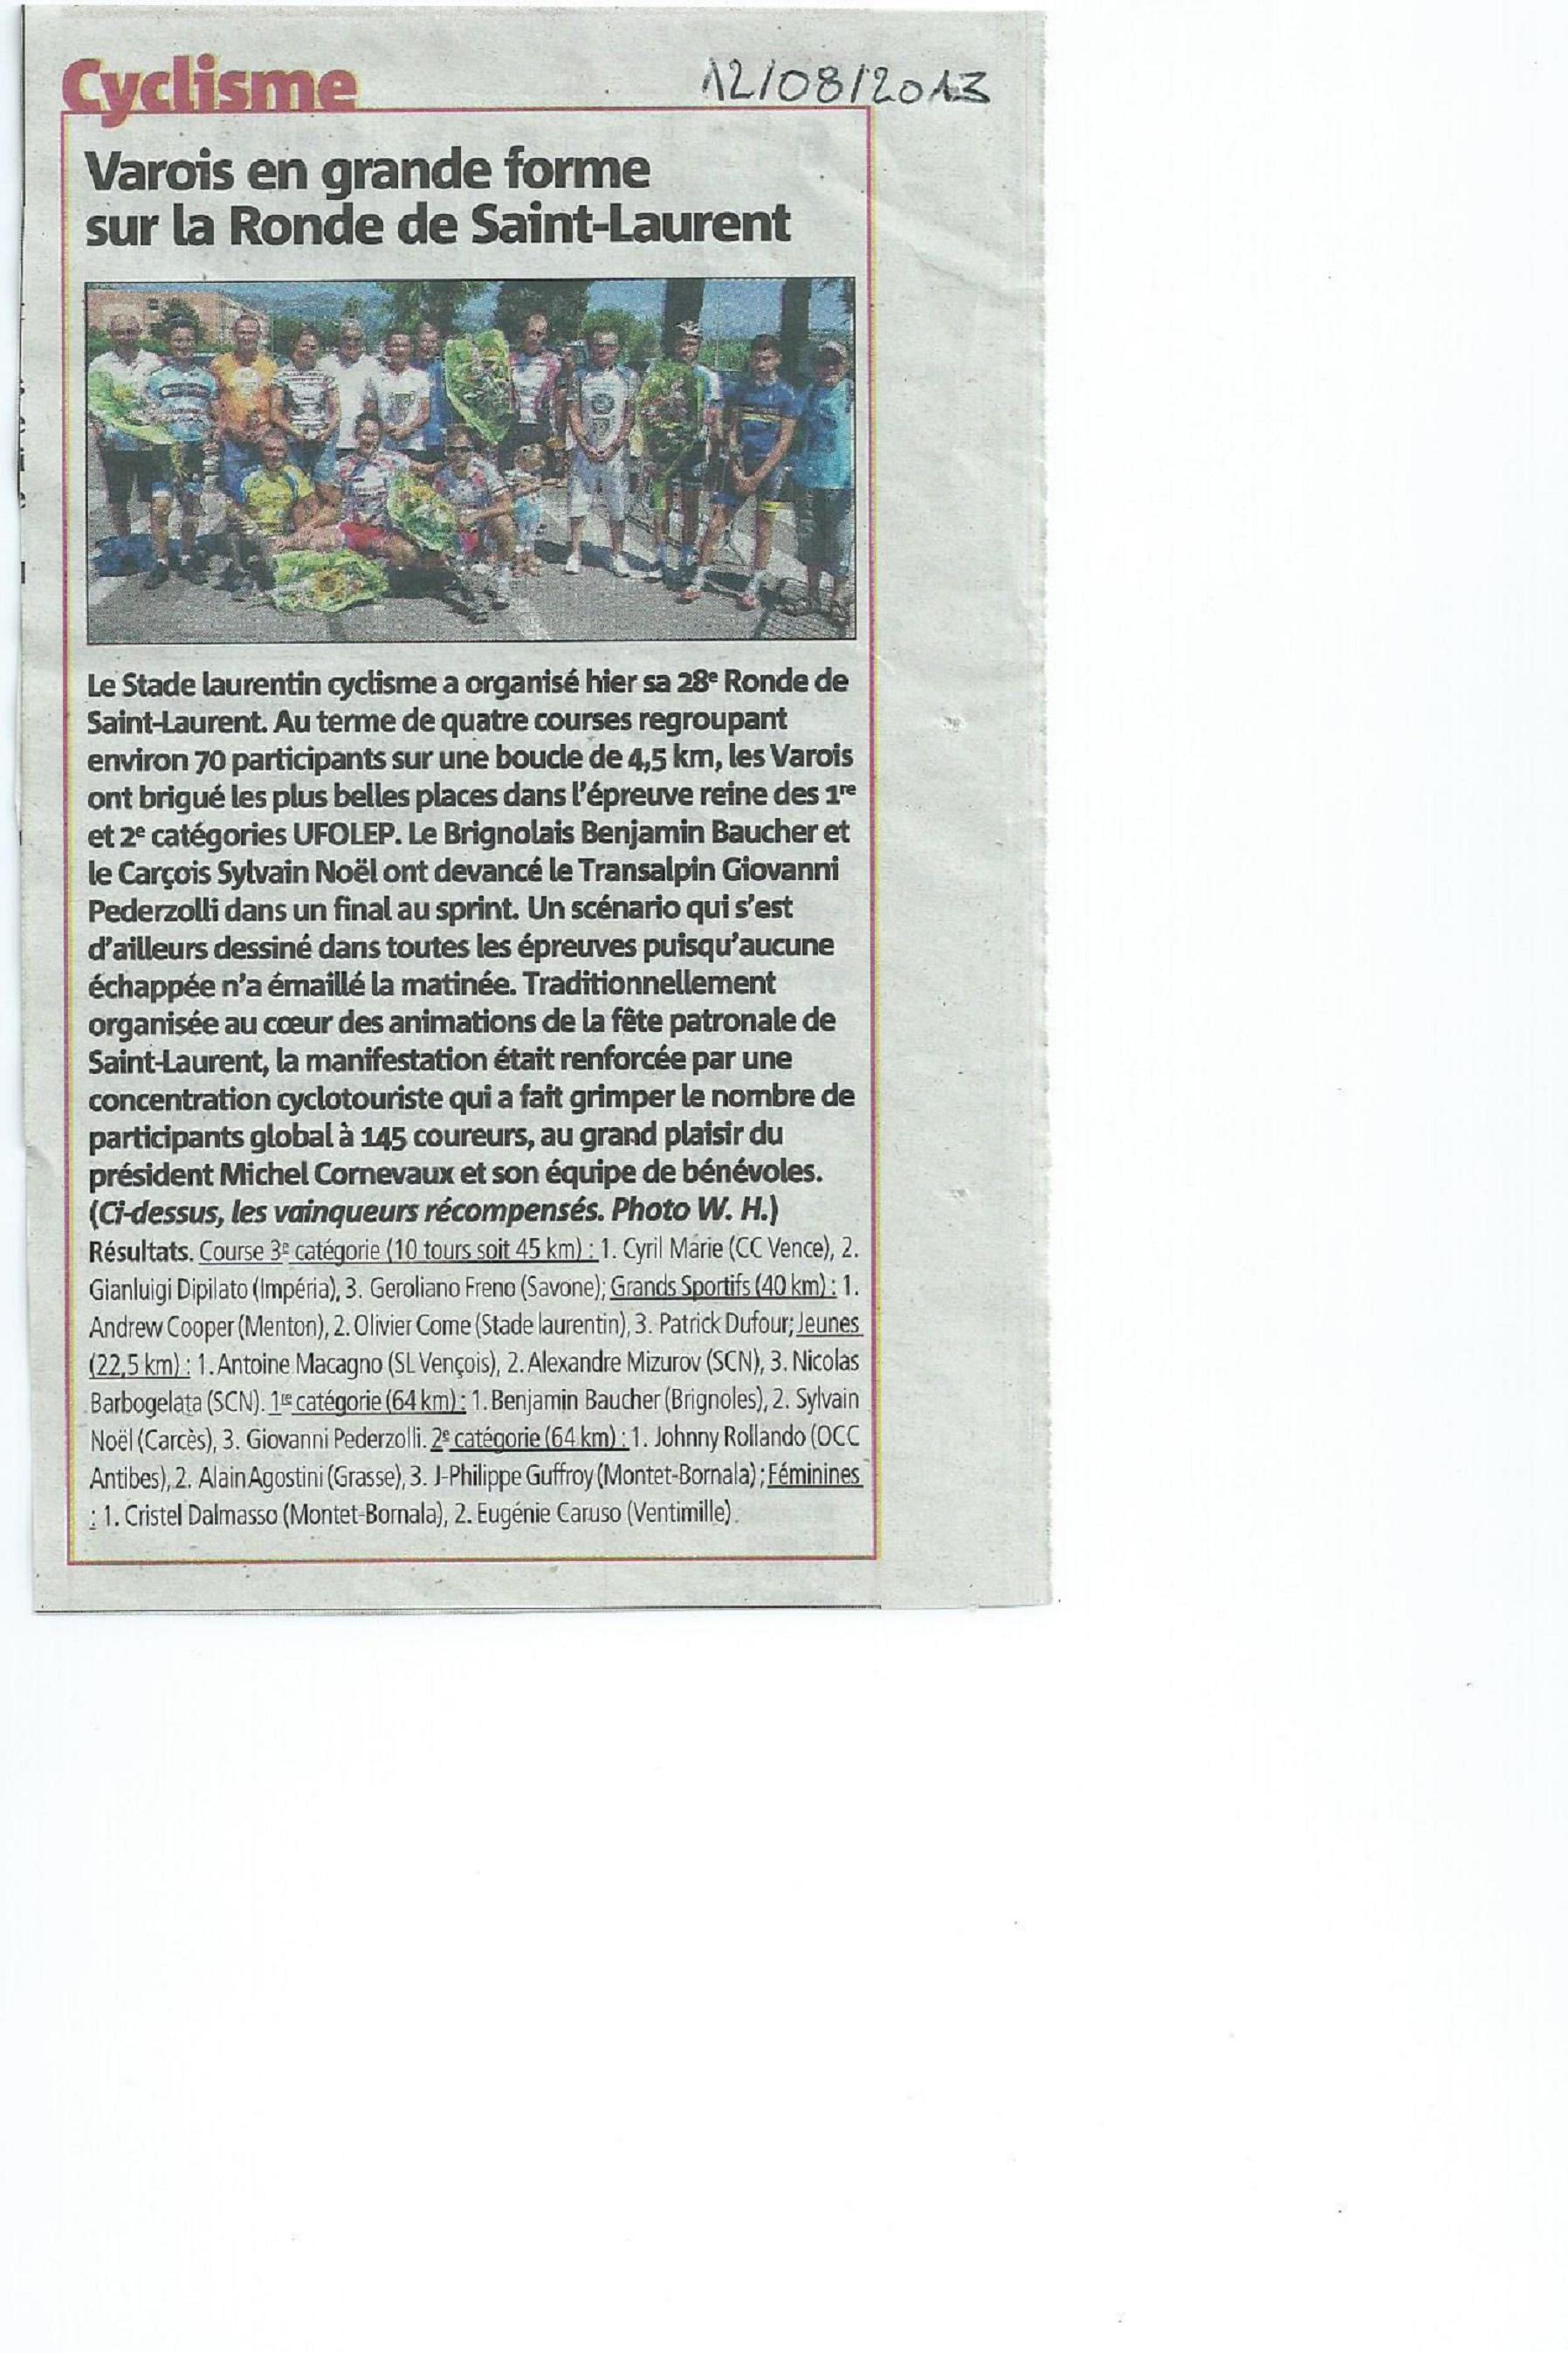 Ronde de la Saint-Laurent 2013 - article Nice-Matin 12 08 2013